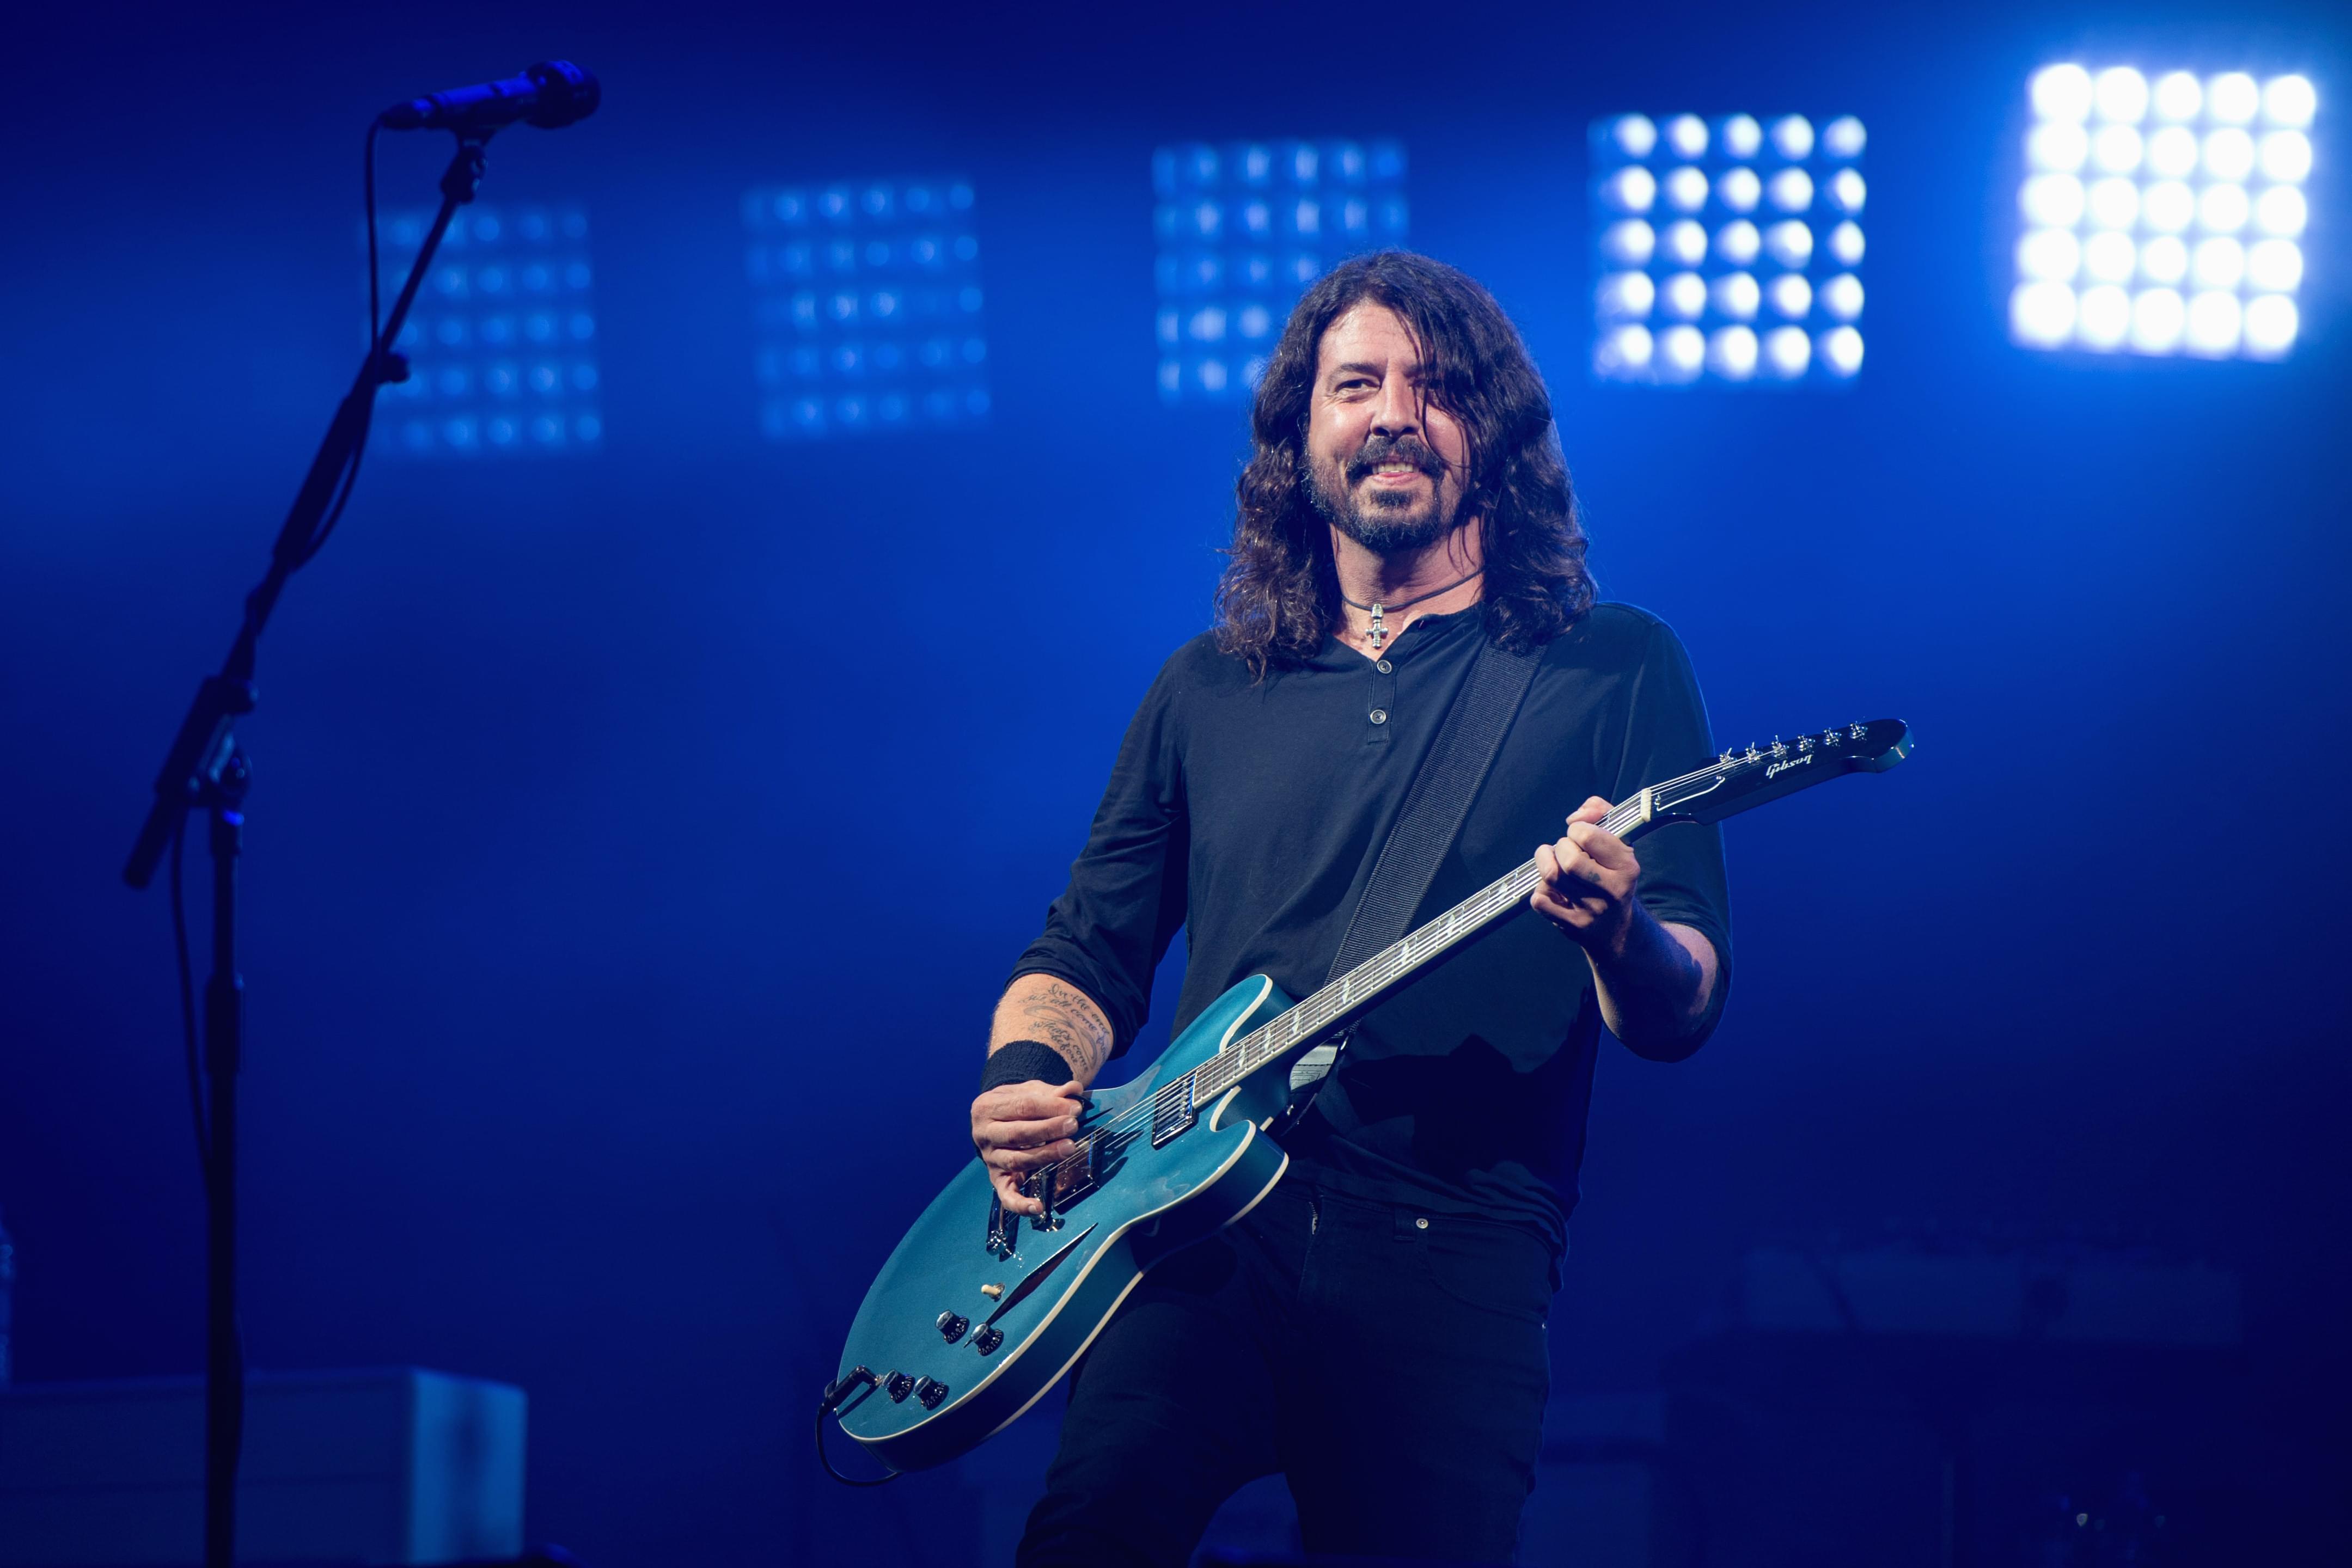 This Guy's Story About Meeting Dave Grohl Proves He's the Greatest [VIDEO]